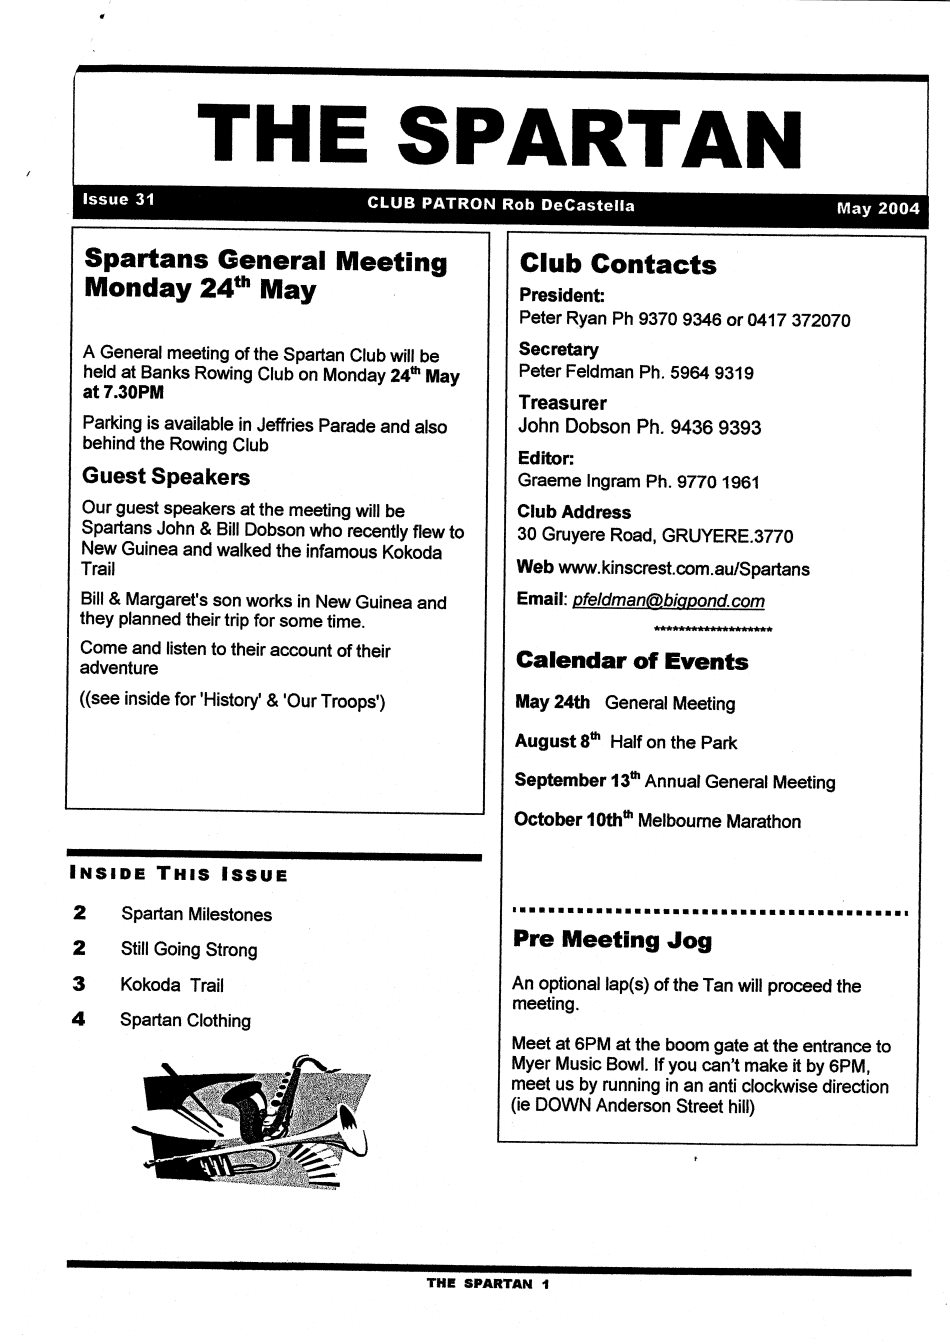 Newsletter May 2004 Melbourne Marathon Spartans